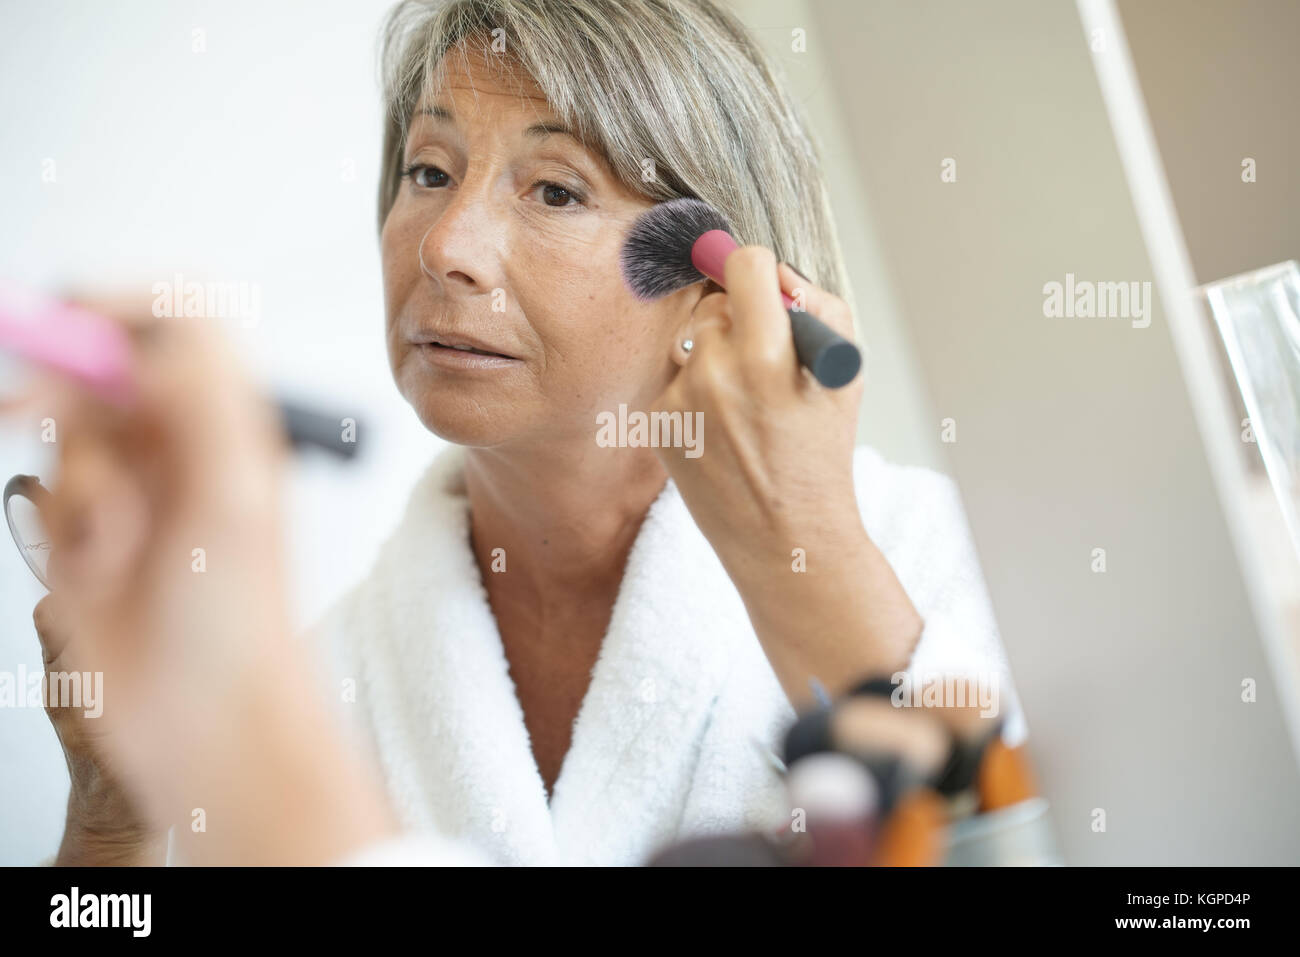 Senior woman in front of mirror putting makeup on - Stock Image